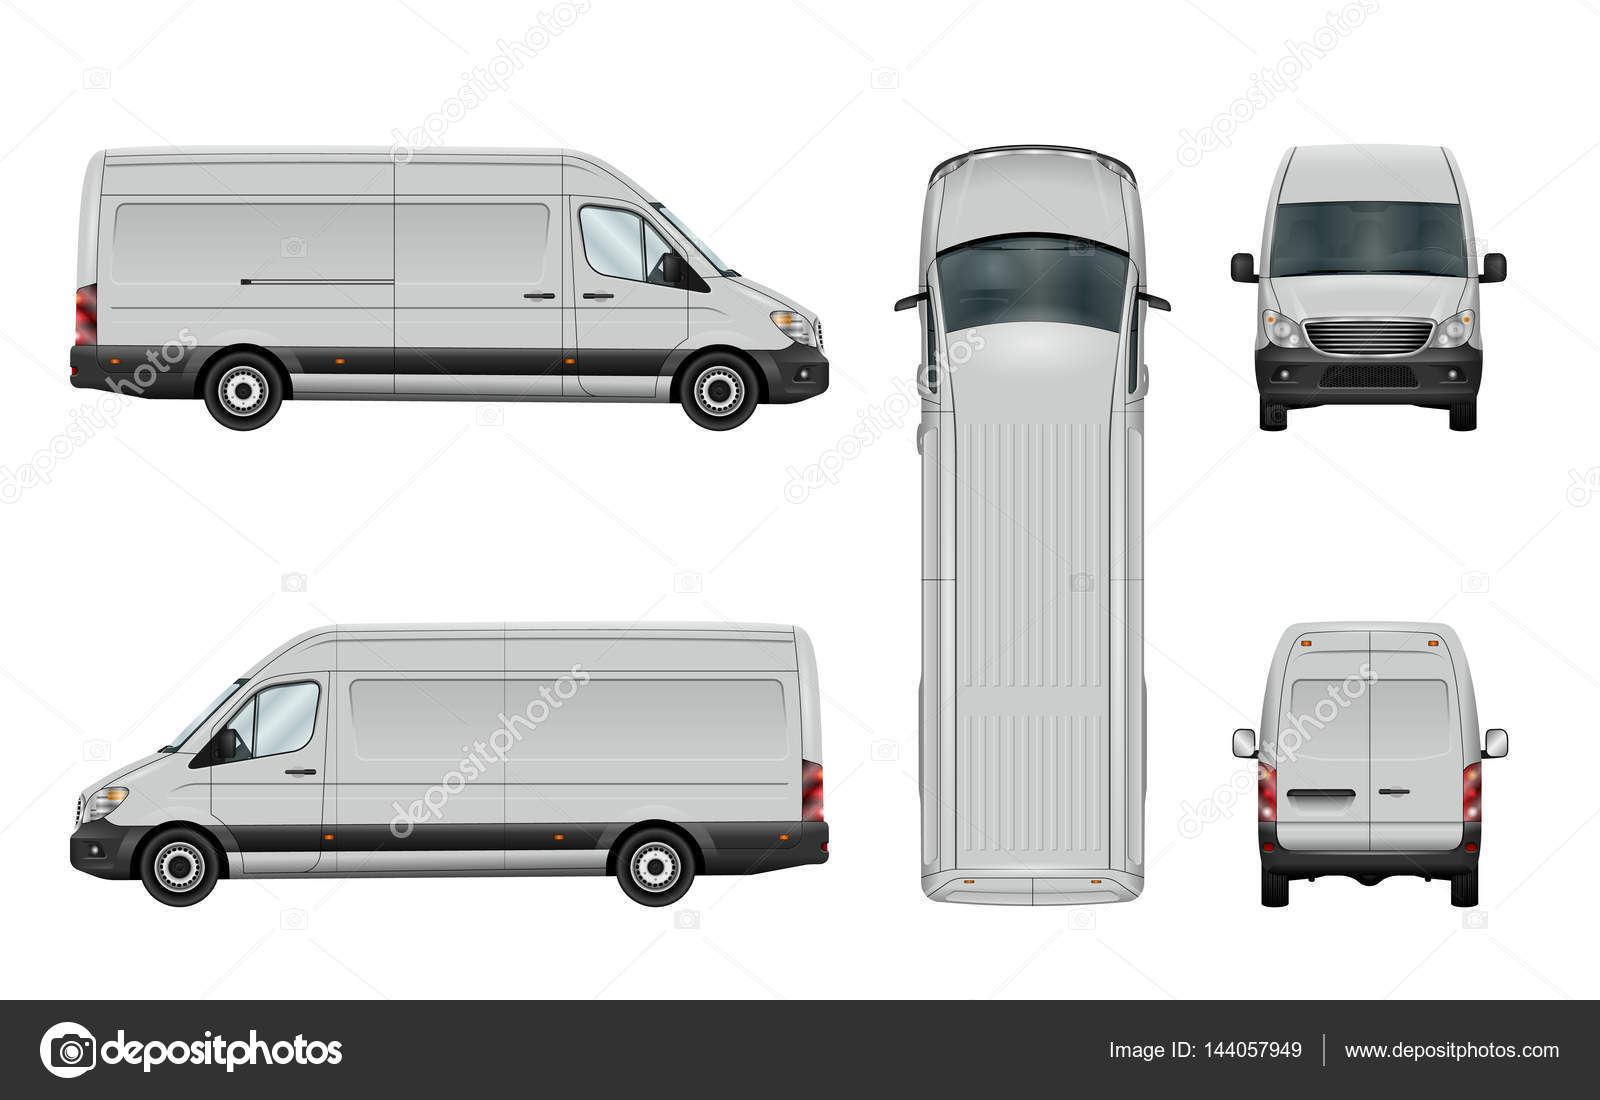 96cfa8b1781d White van template. Vector commercial vehicle isolated on white background. All  elements in the groups have names